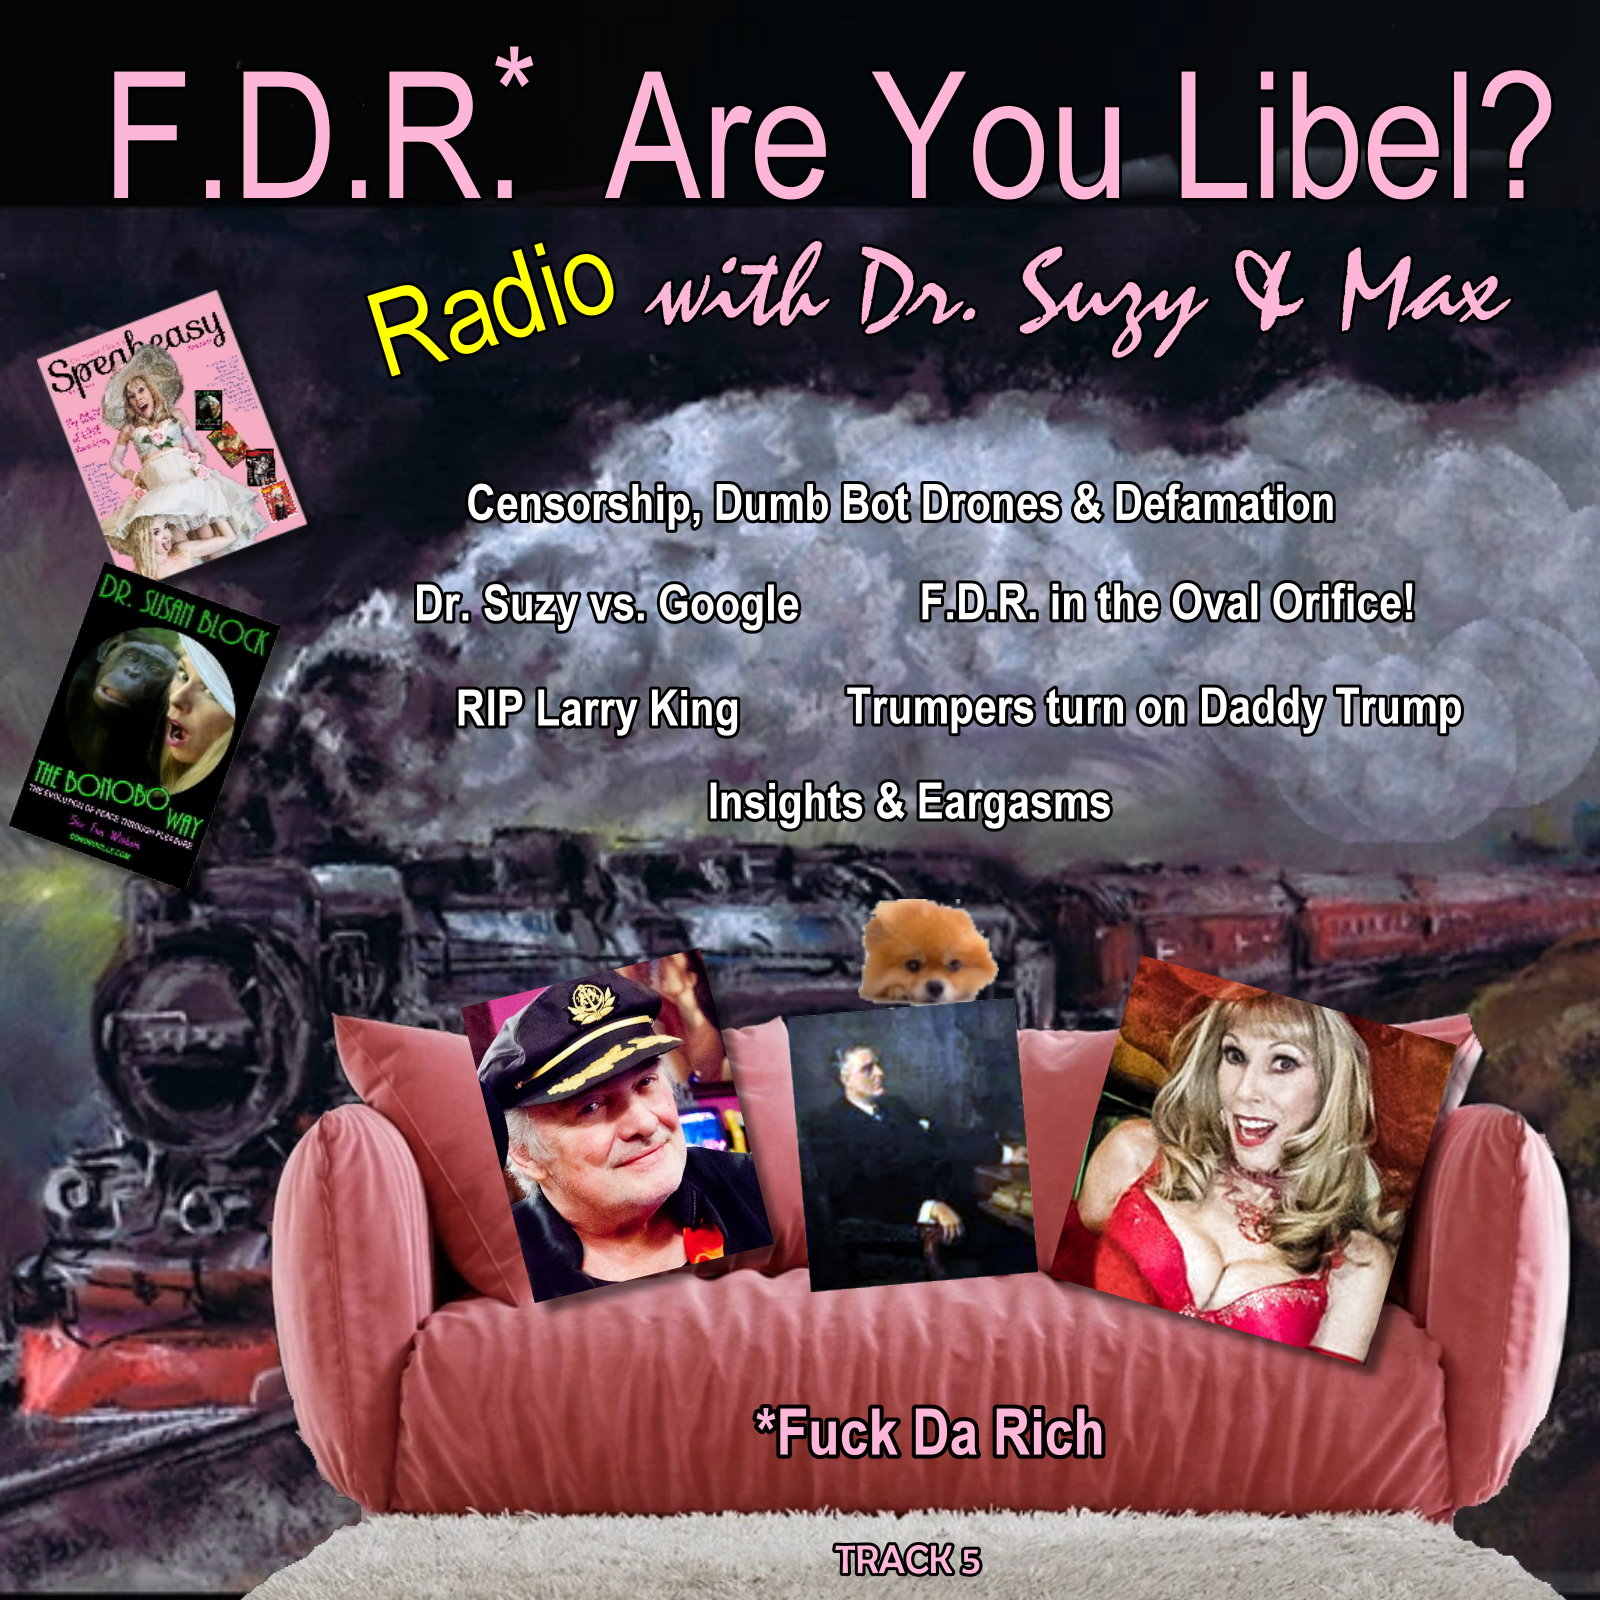 F.D.R. (F*ck Da Rich): Are You Libel? Have You Been Dumb-Bot-Droned?